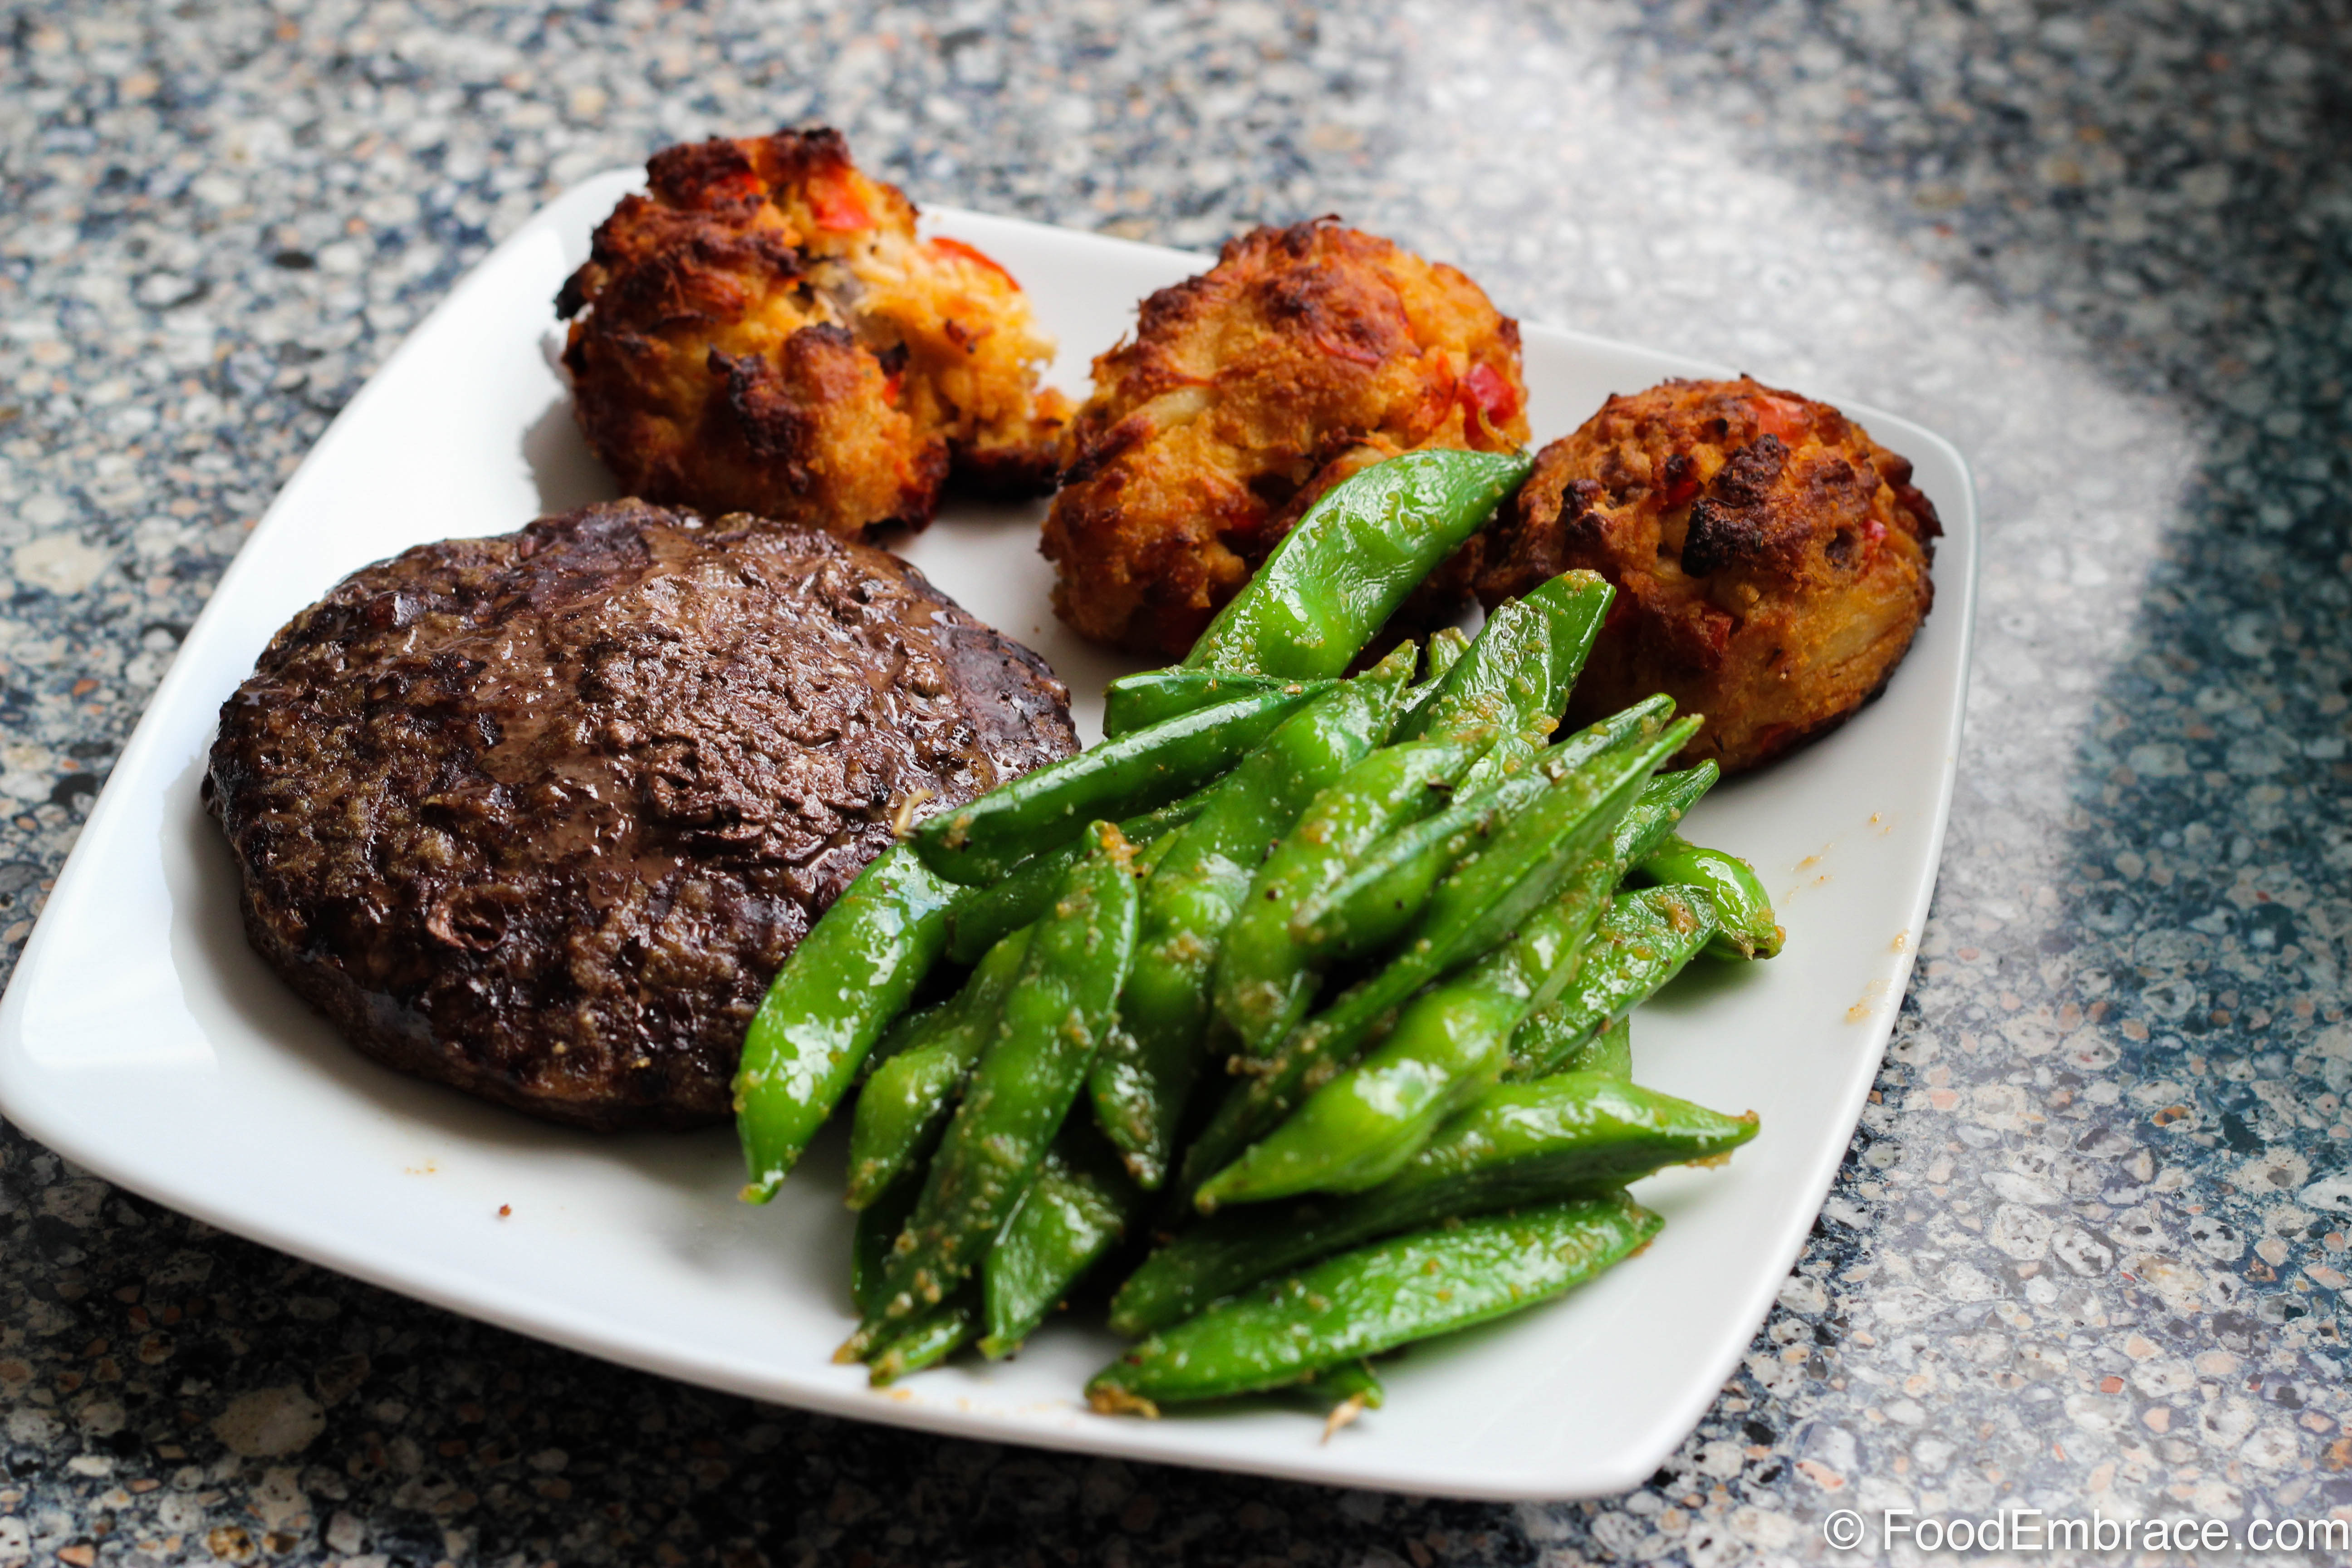 Burger, crab cakes, snap peas